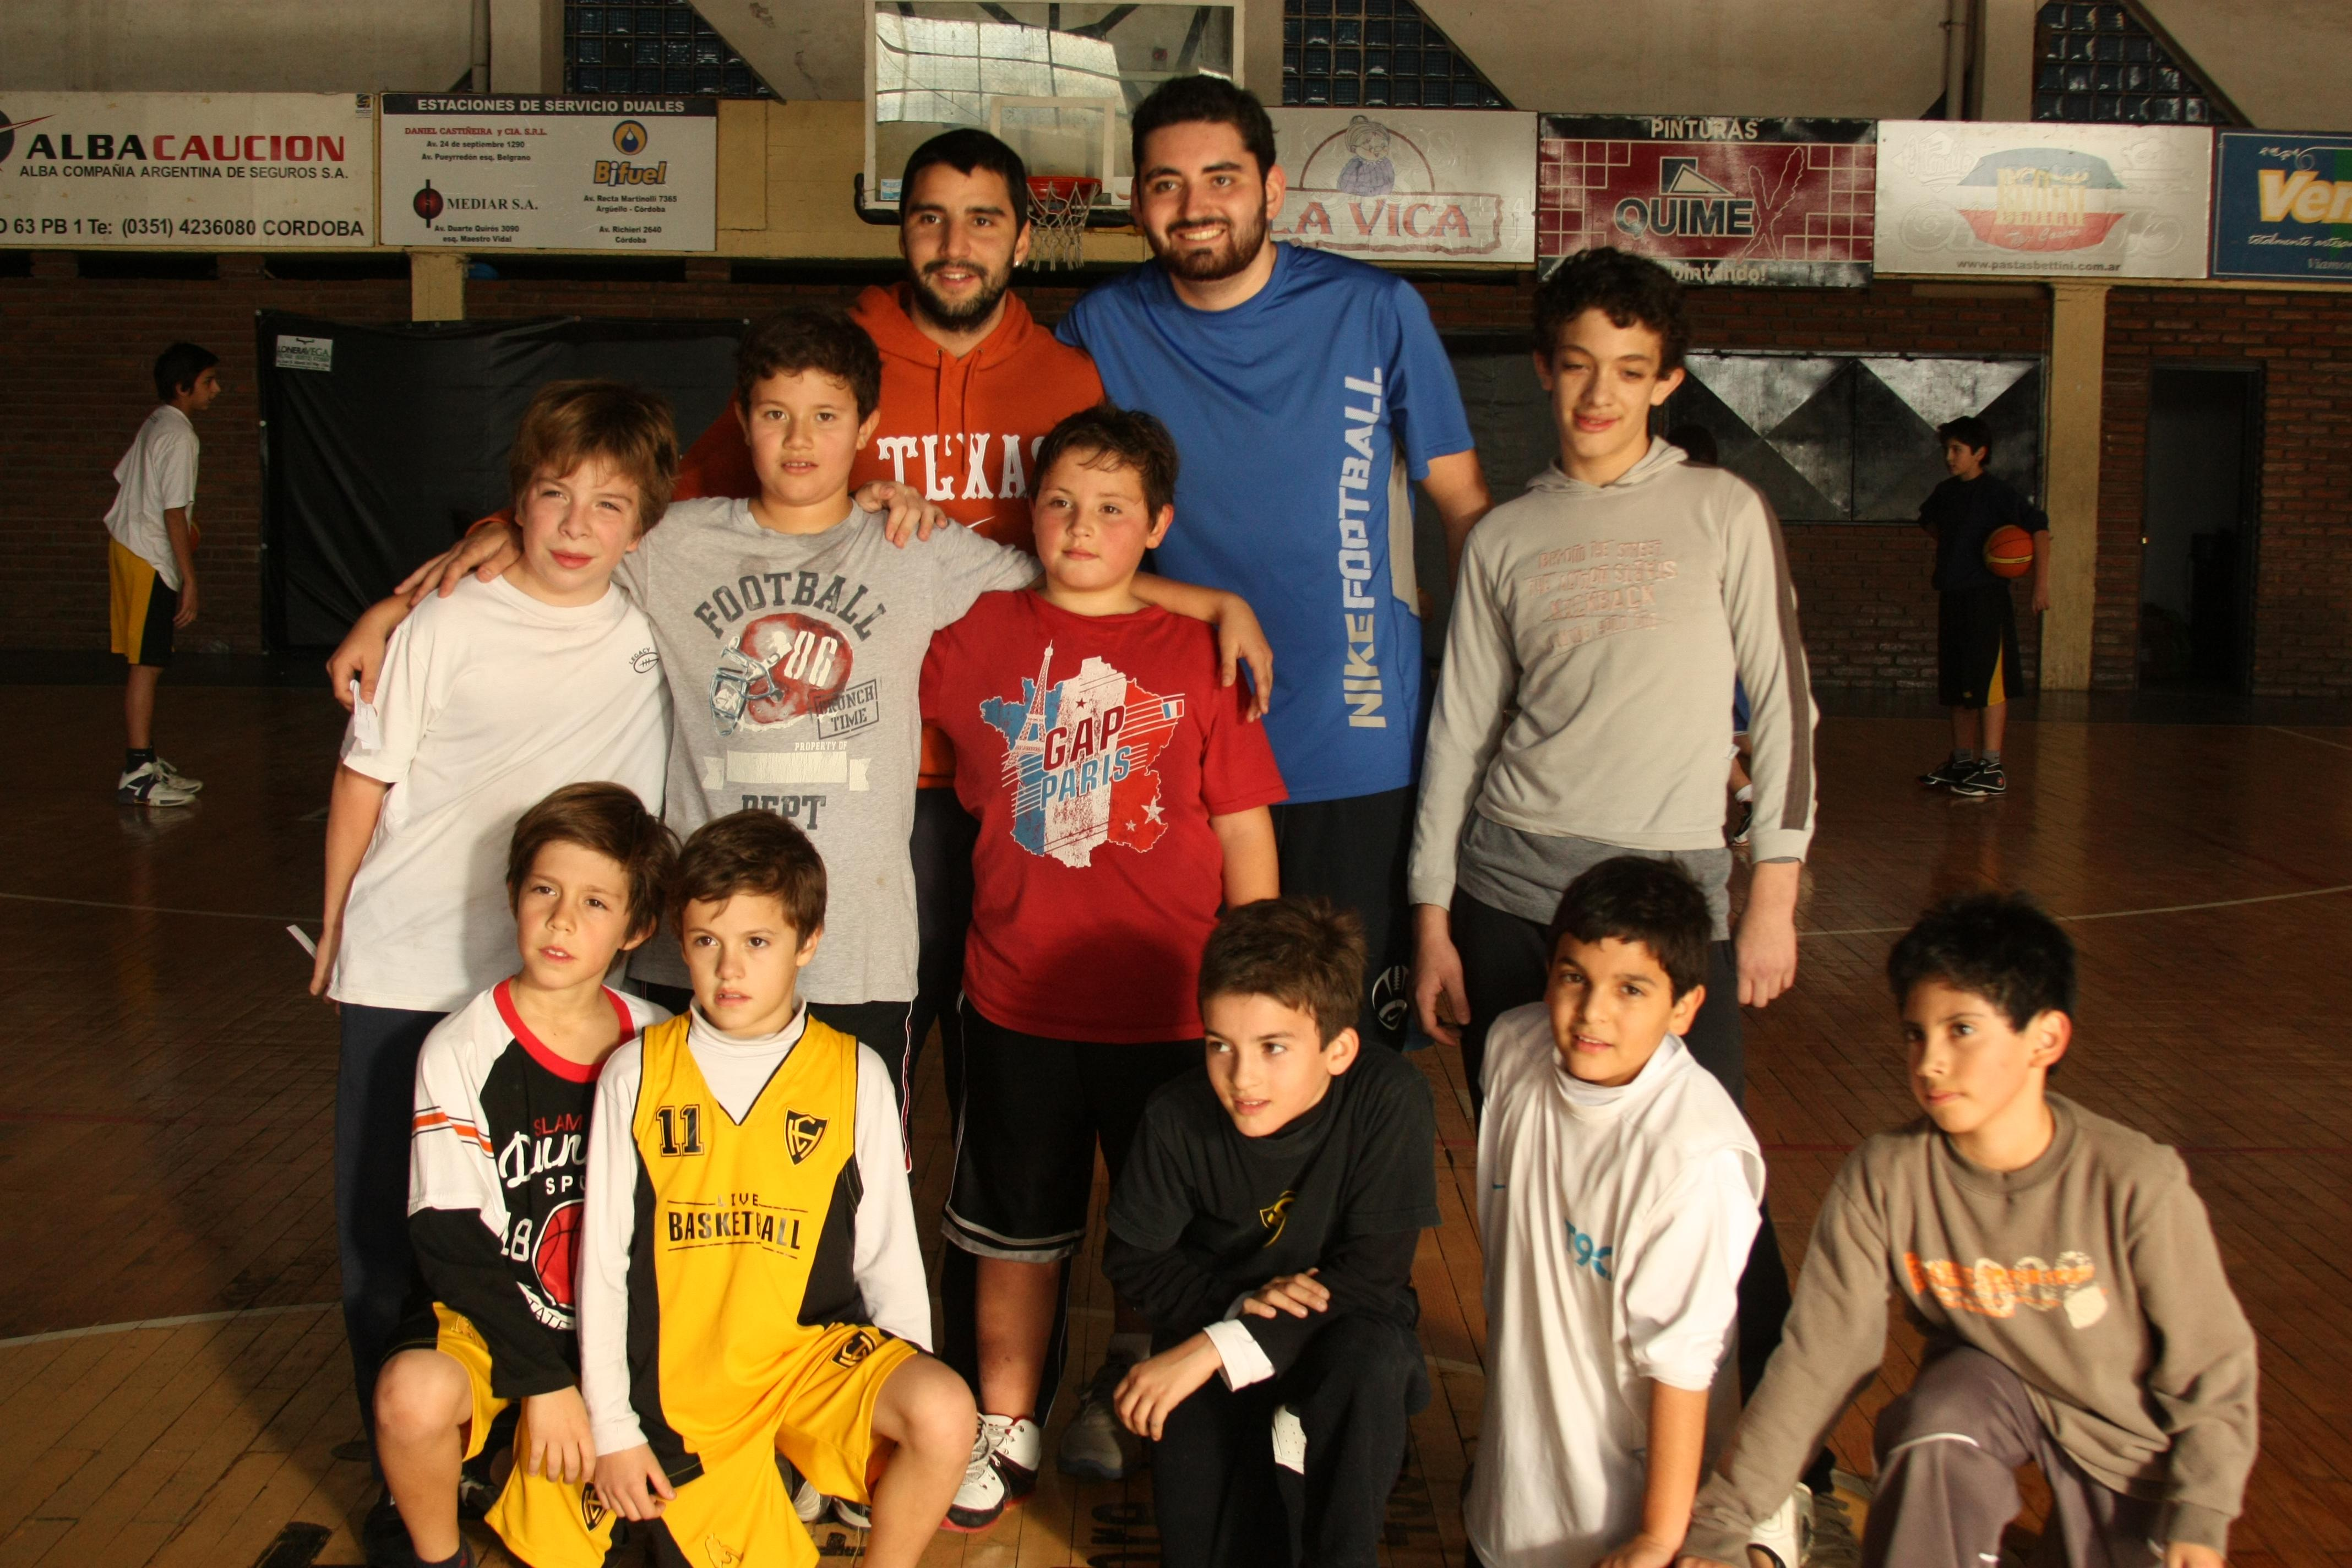 Sports instructors pose with their team as part of their volunteer sports coaching in Argentina